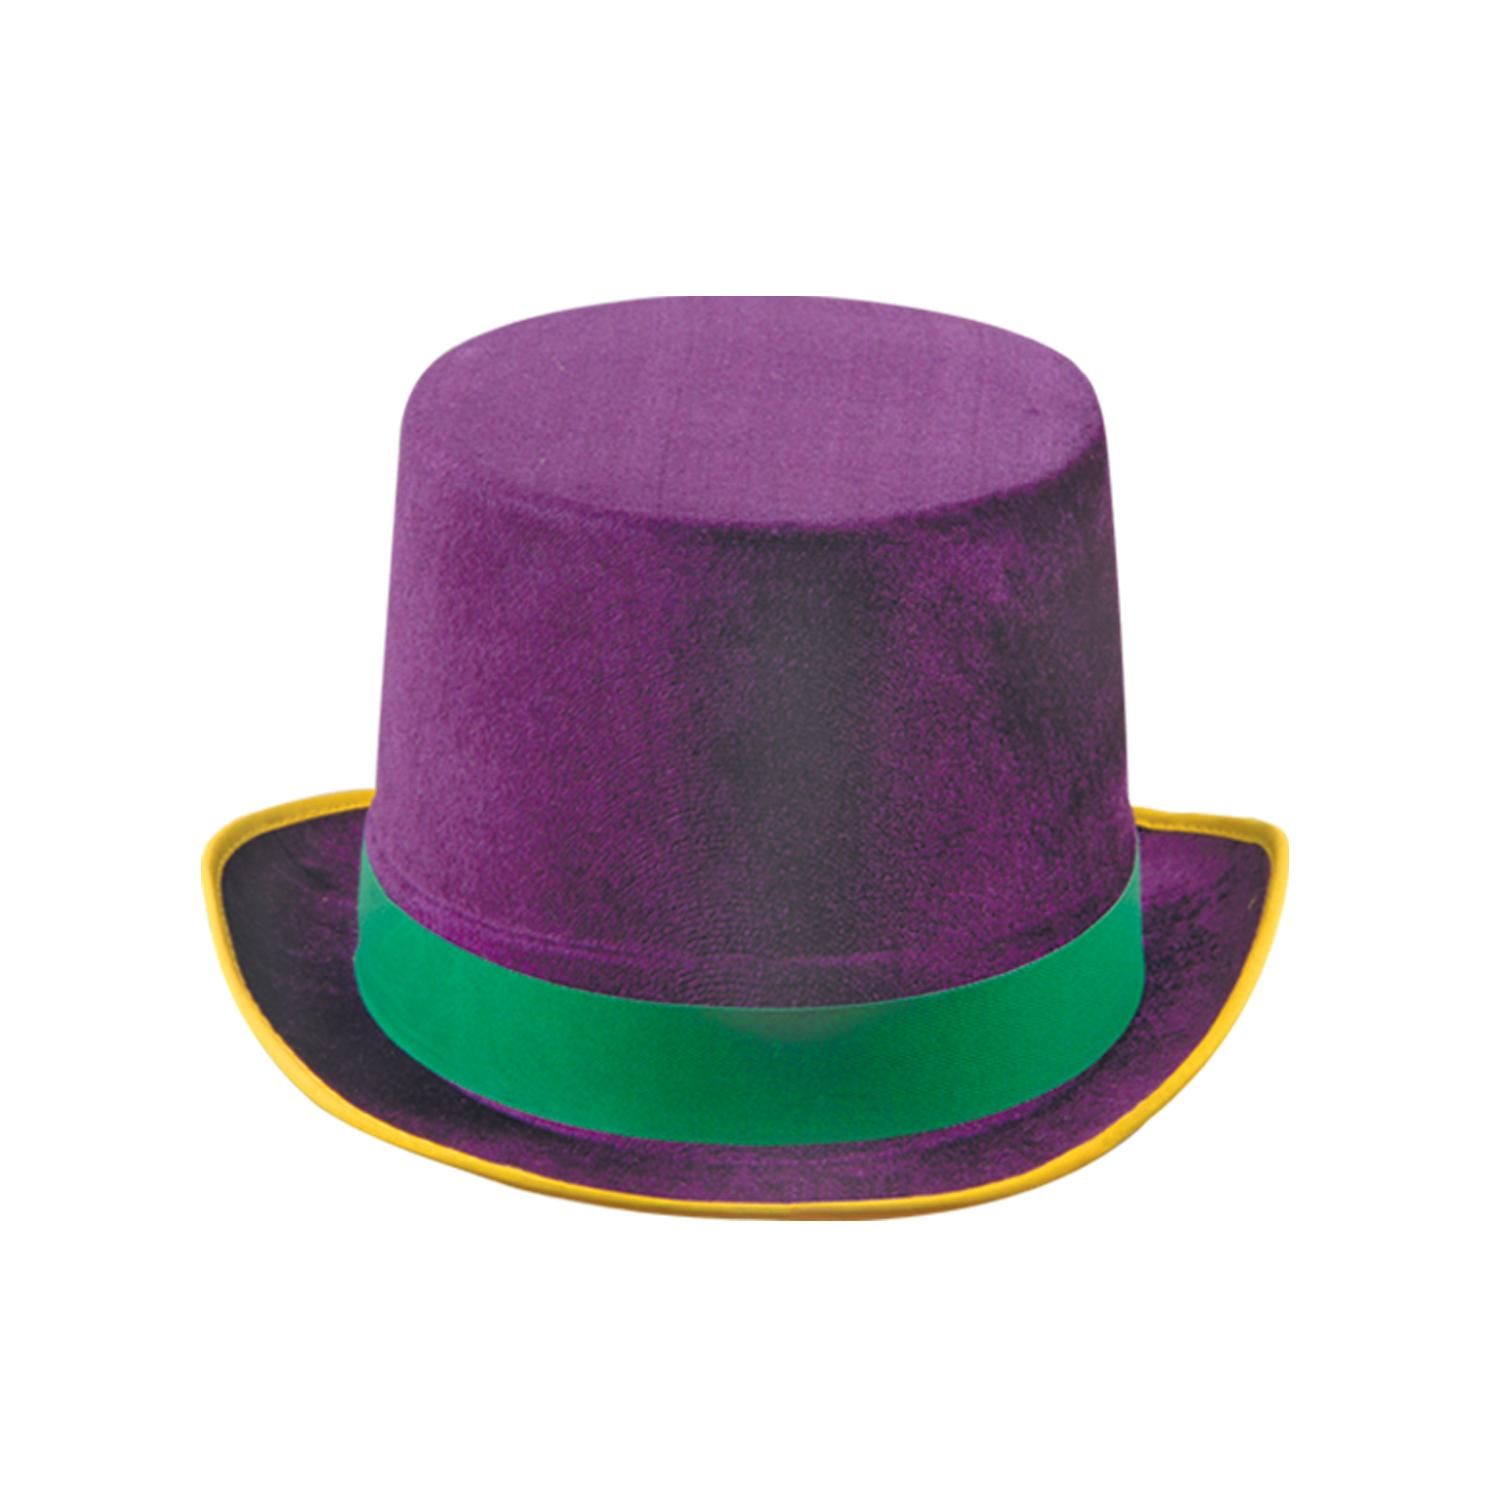 Beistle (12ct) Dura-Form Vel-Felt Top Hat gold, green, pu...